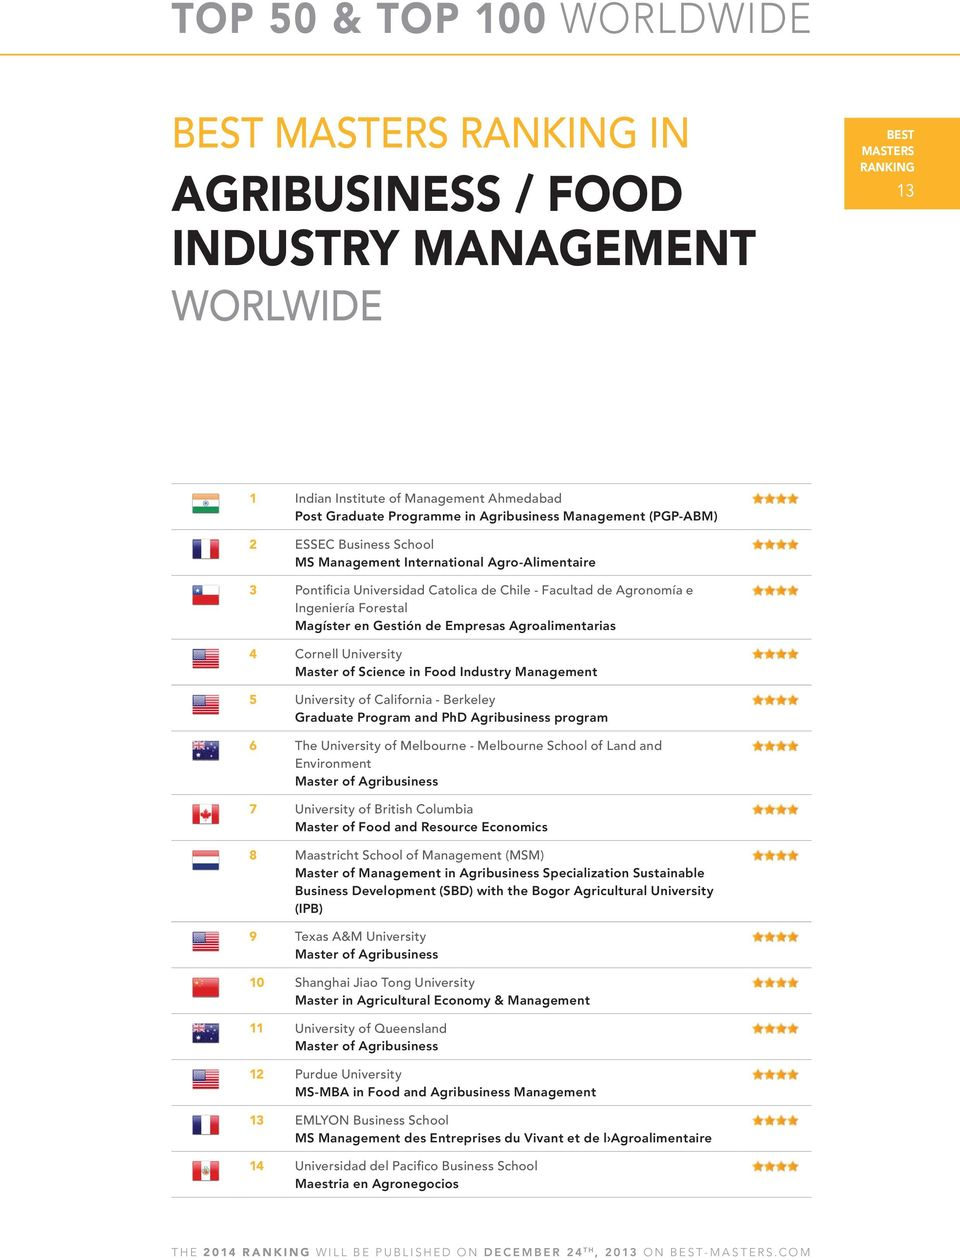 Food Industry 5 University of California - Berkeley Graduate Program and PhD Agribusiness program 6 The University of Melbourne - Melbourne School of Land and Environment Master of Agribusiness 7